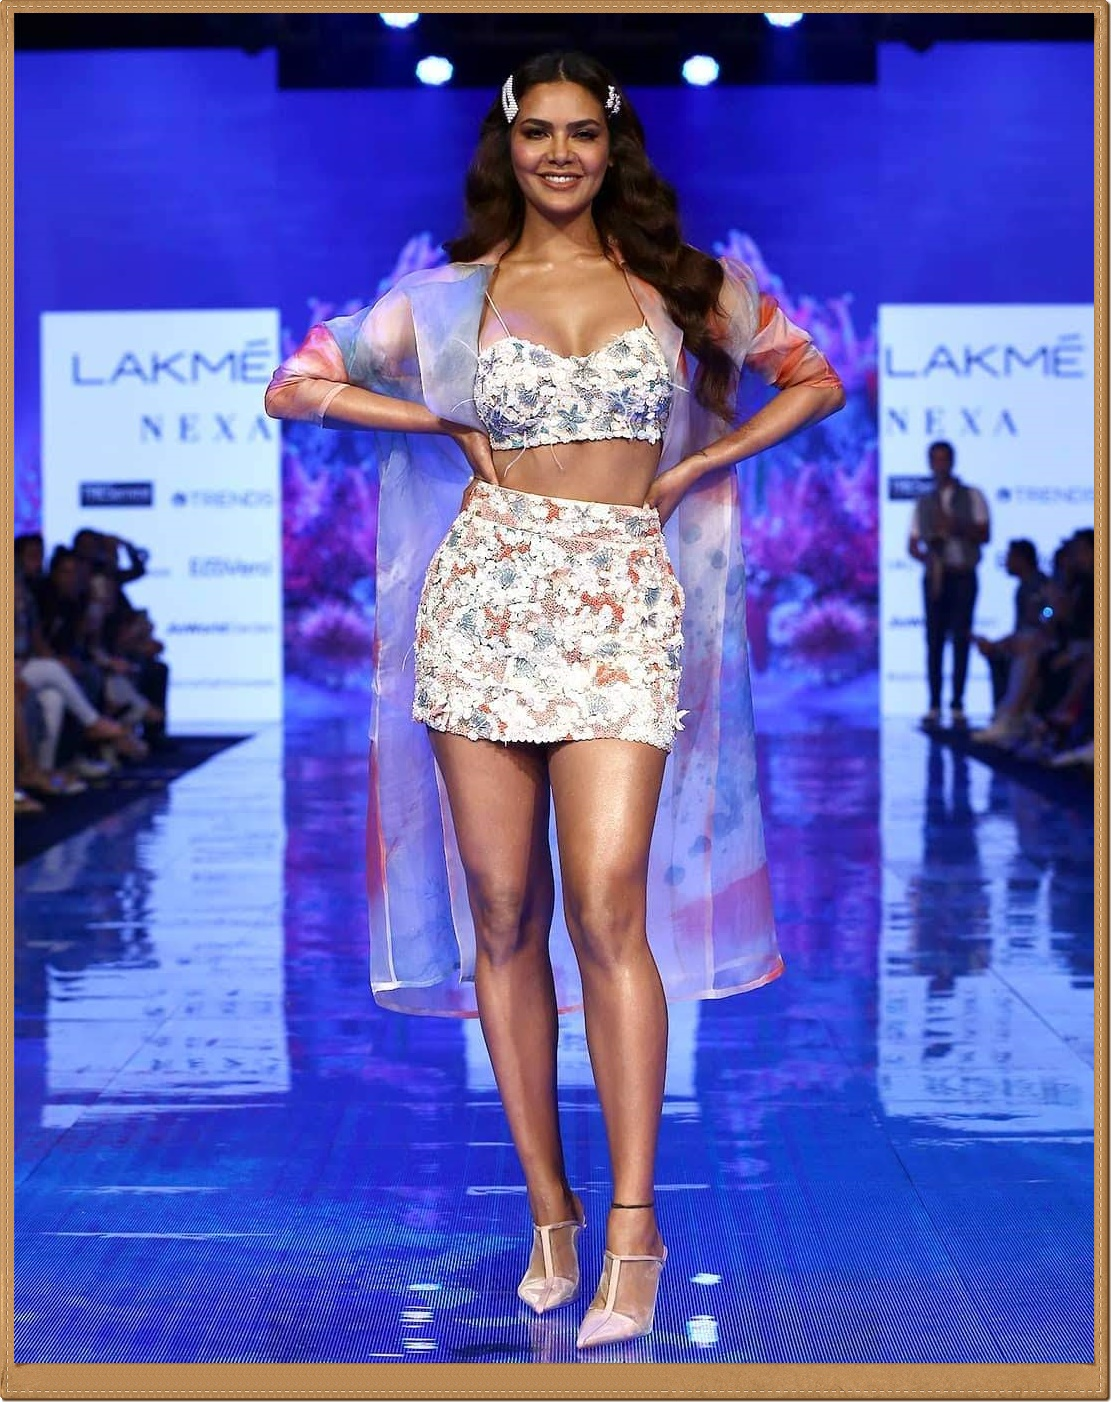 lakme-fashion-week-2020-4